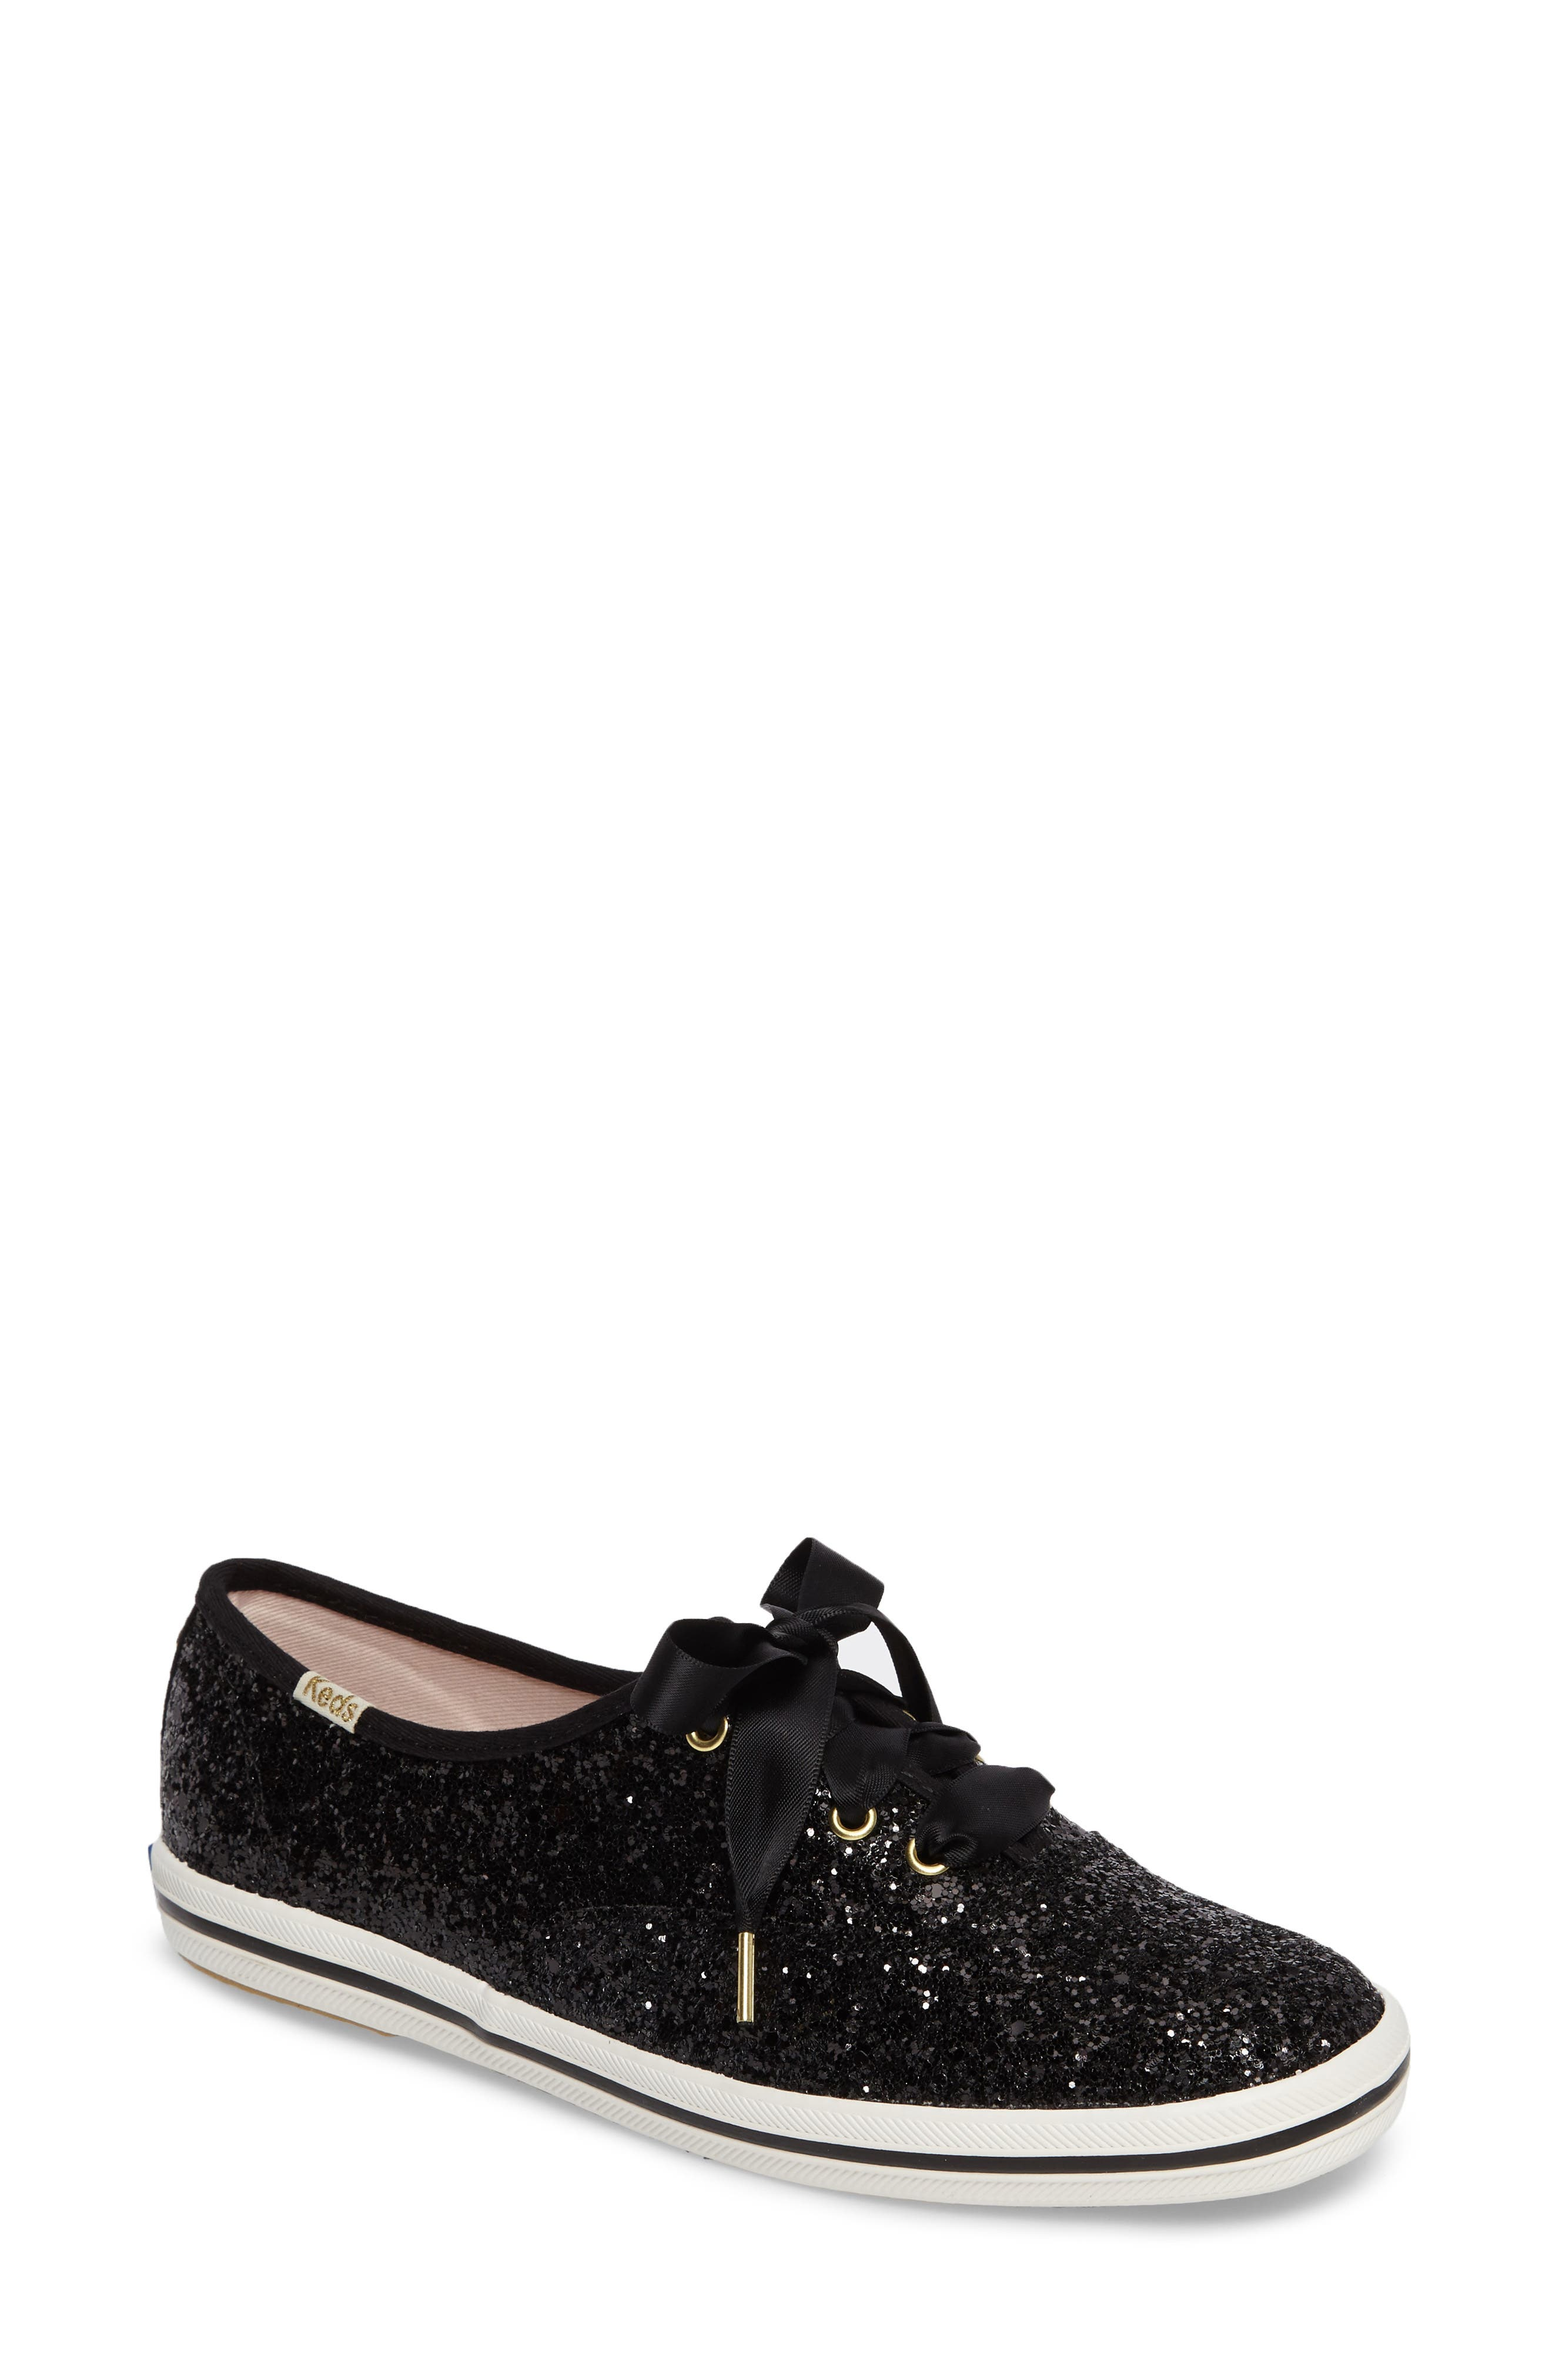 KEDS<SUP>®</SUP> FOR KATE SPADE NEW YORK glitter sneaker, Main, color, BLACK